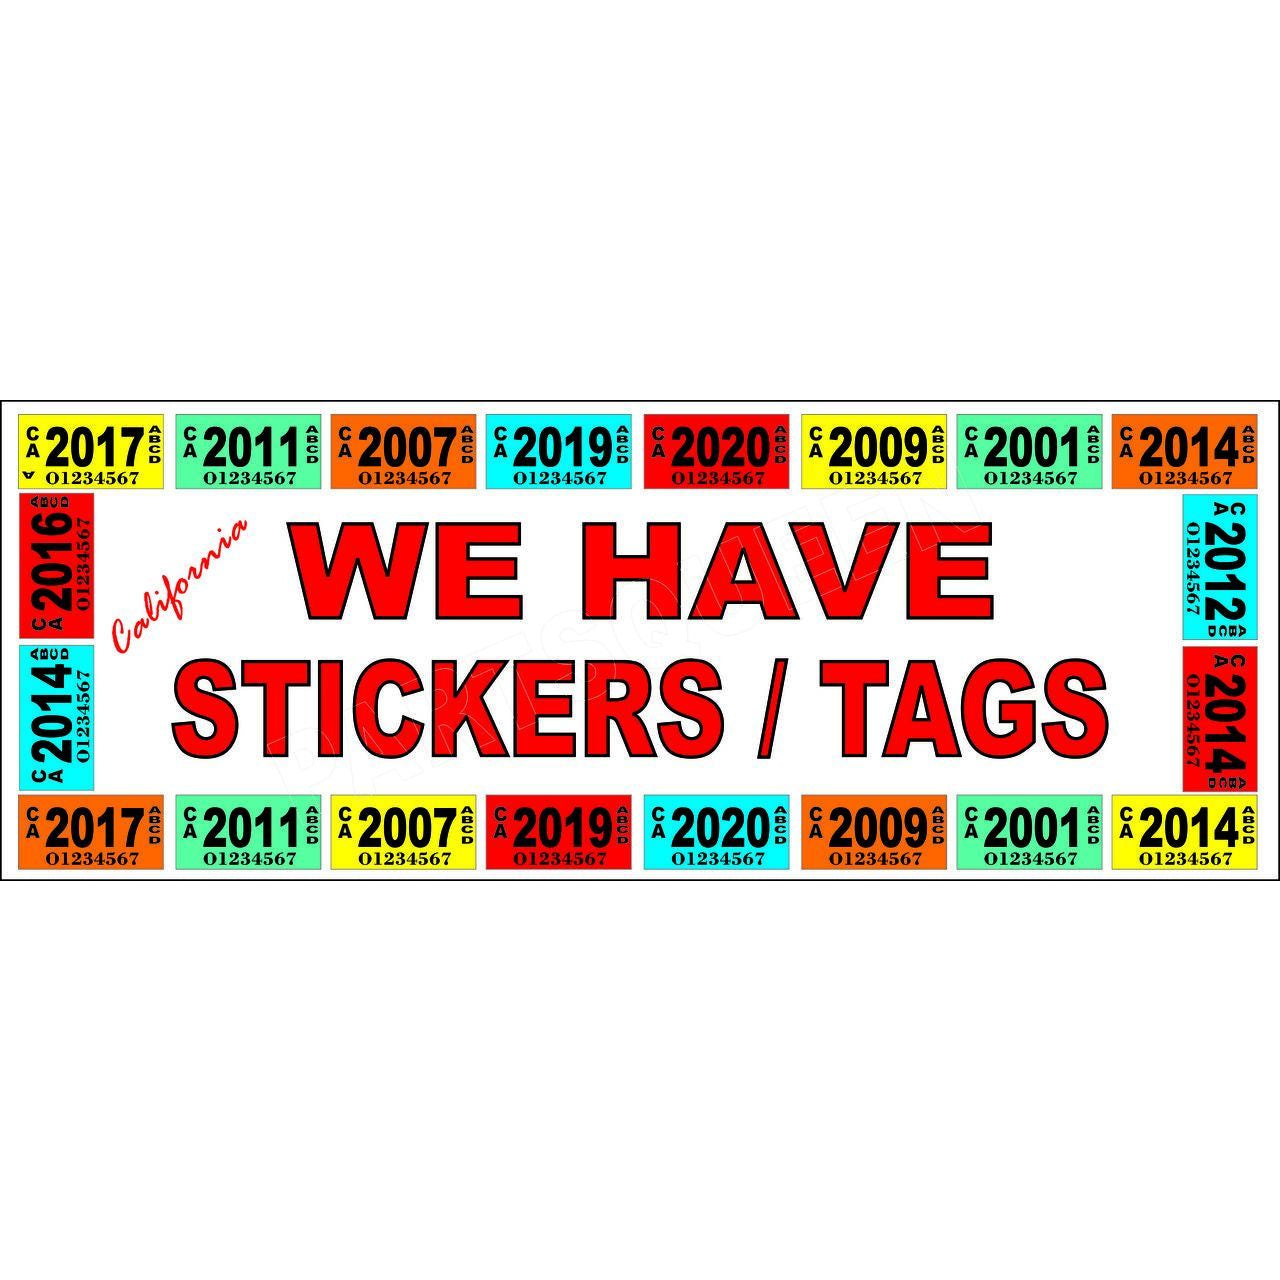 REGISTRATION TAGS BANNER AB704